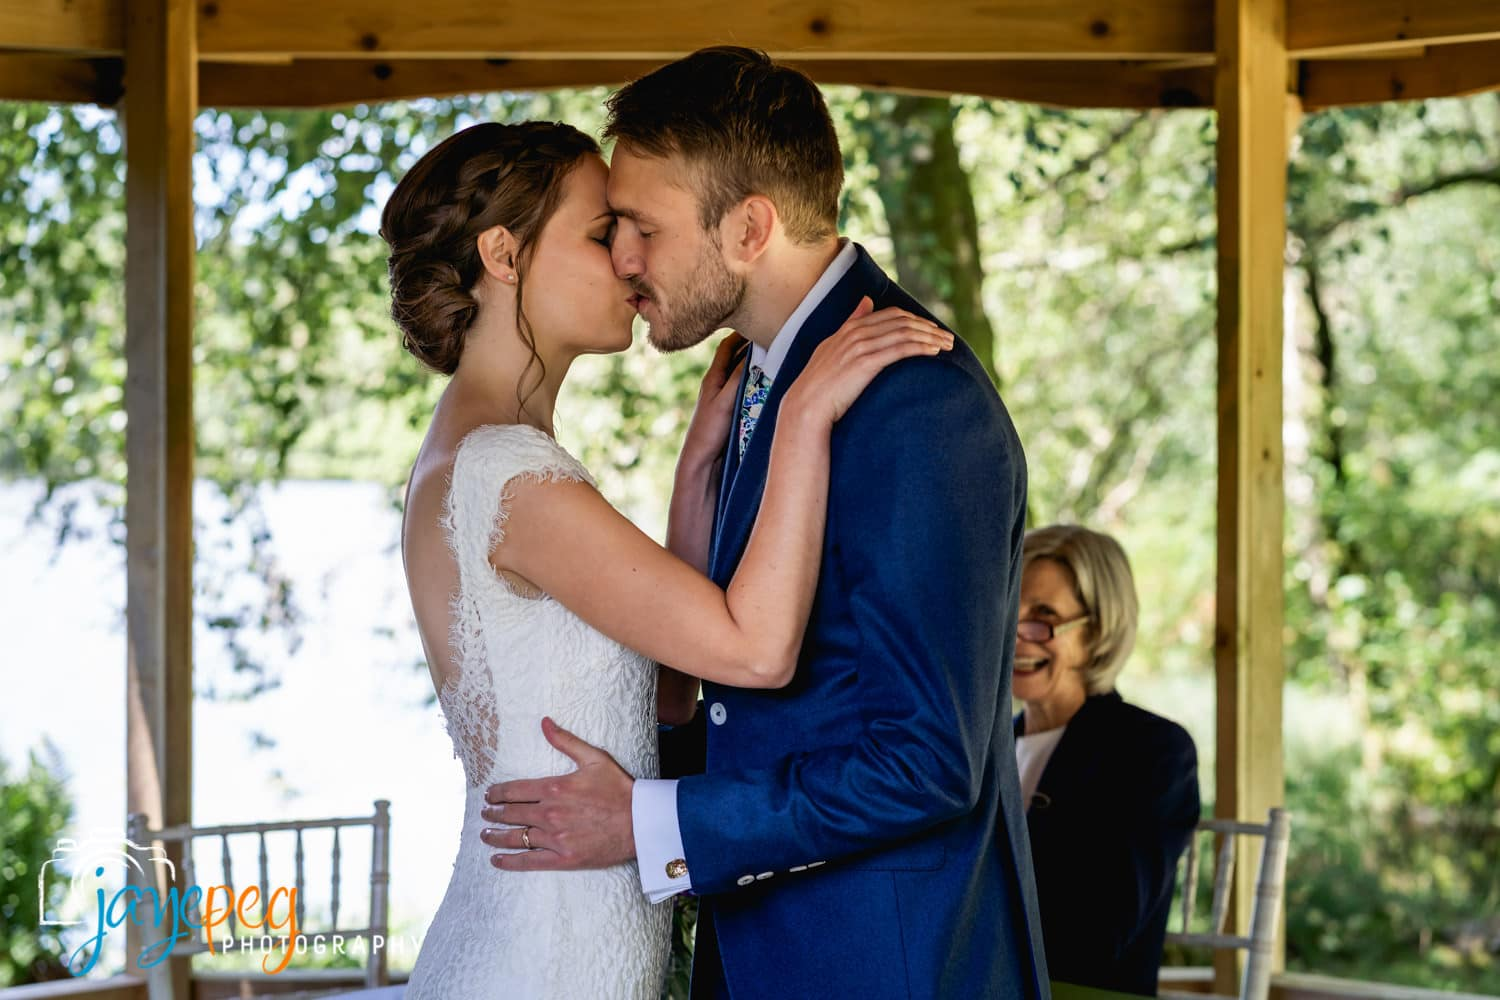 a bride and groom share their first kiss together